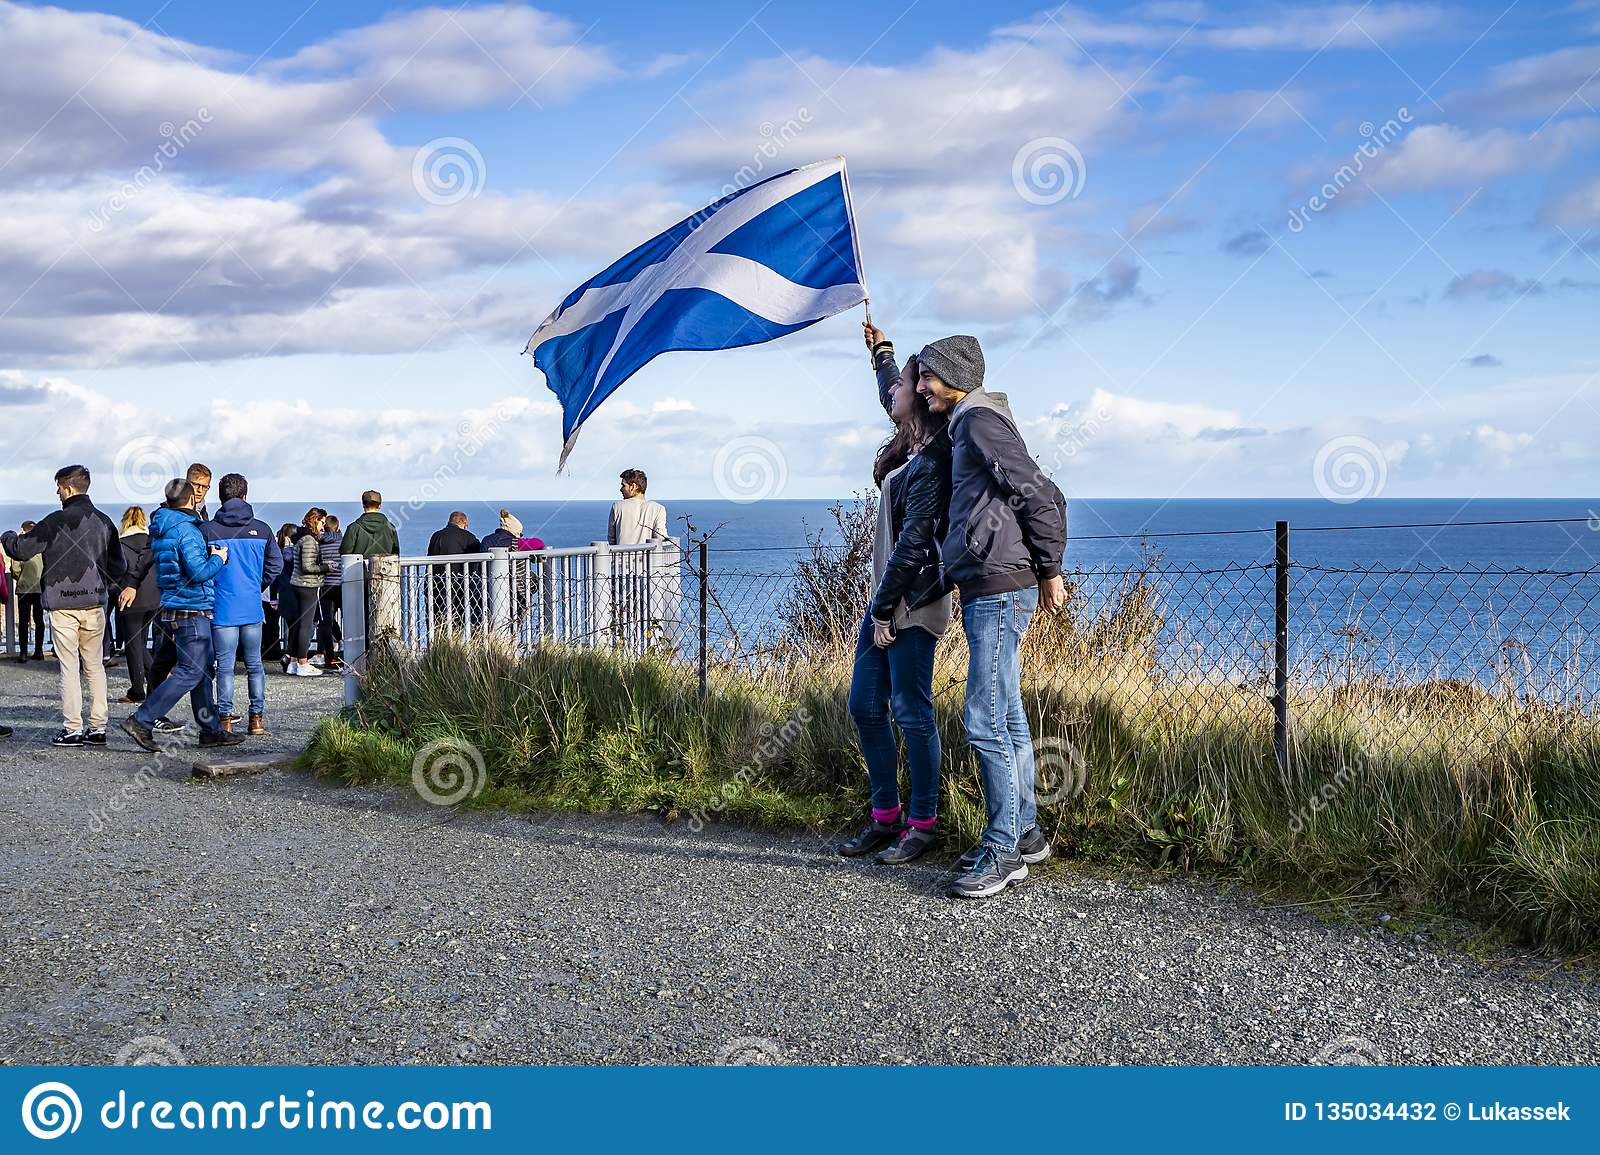 Isle of Skye , Scotland - October 14 2018 : Tourists visiting the Kilt Rock waterfall by Staffin with a waving flag